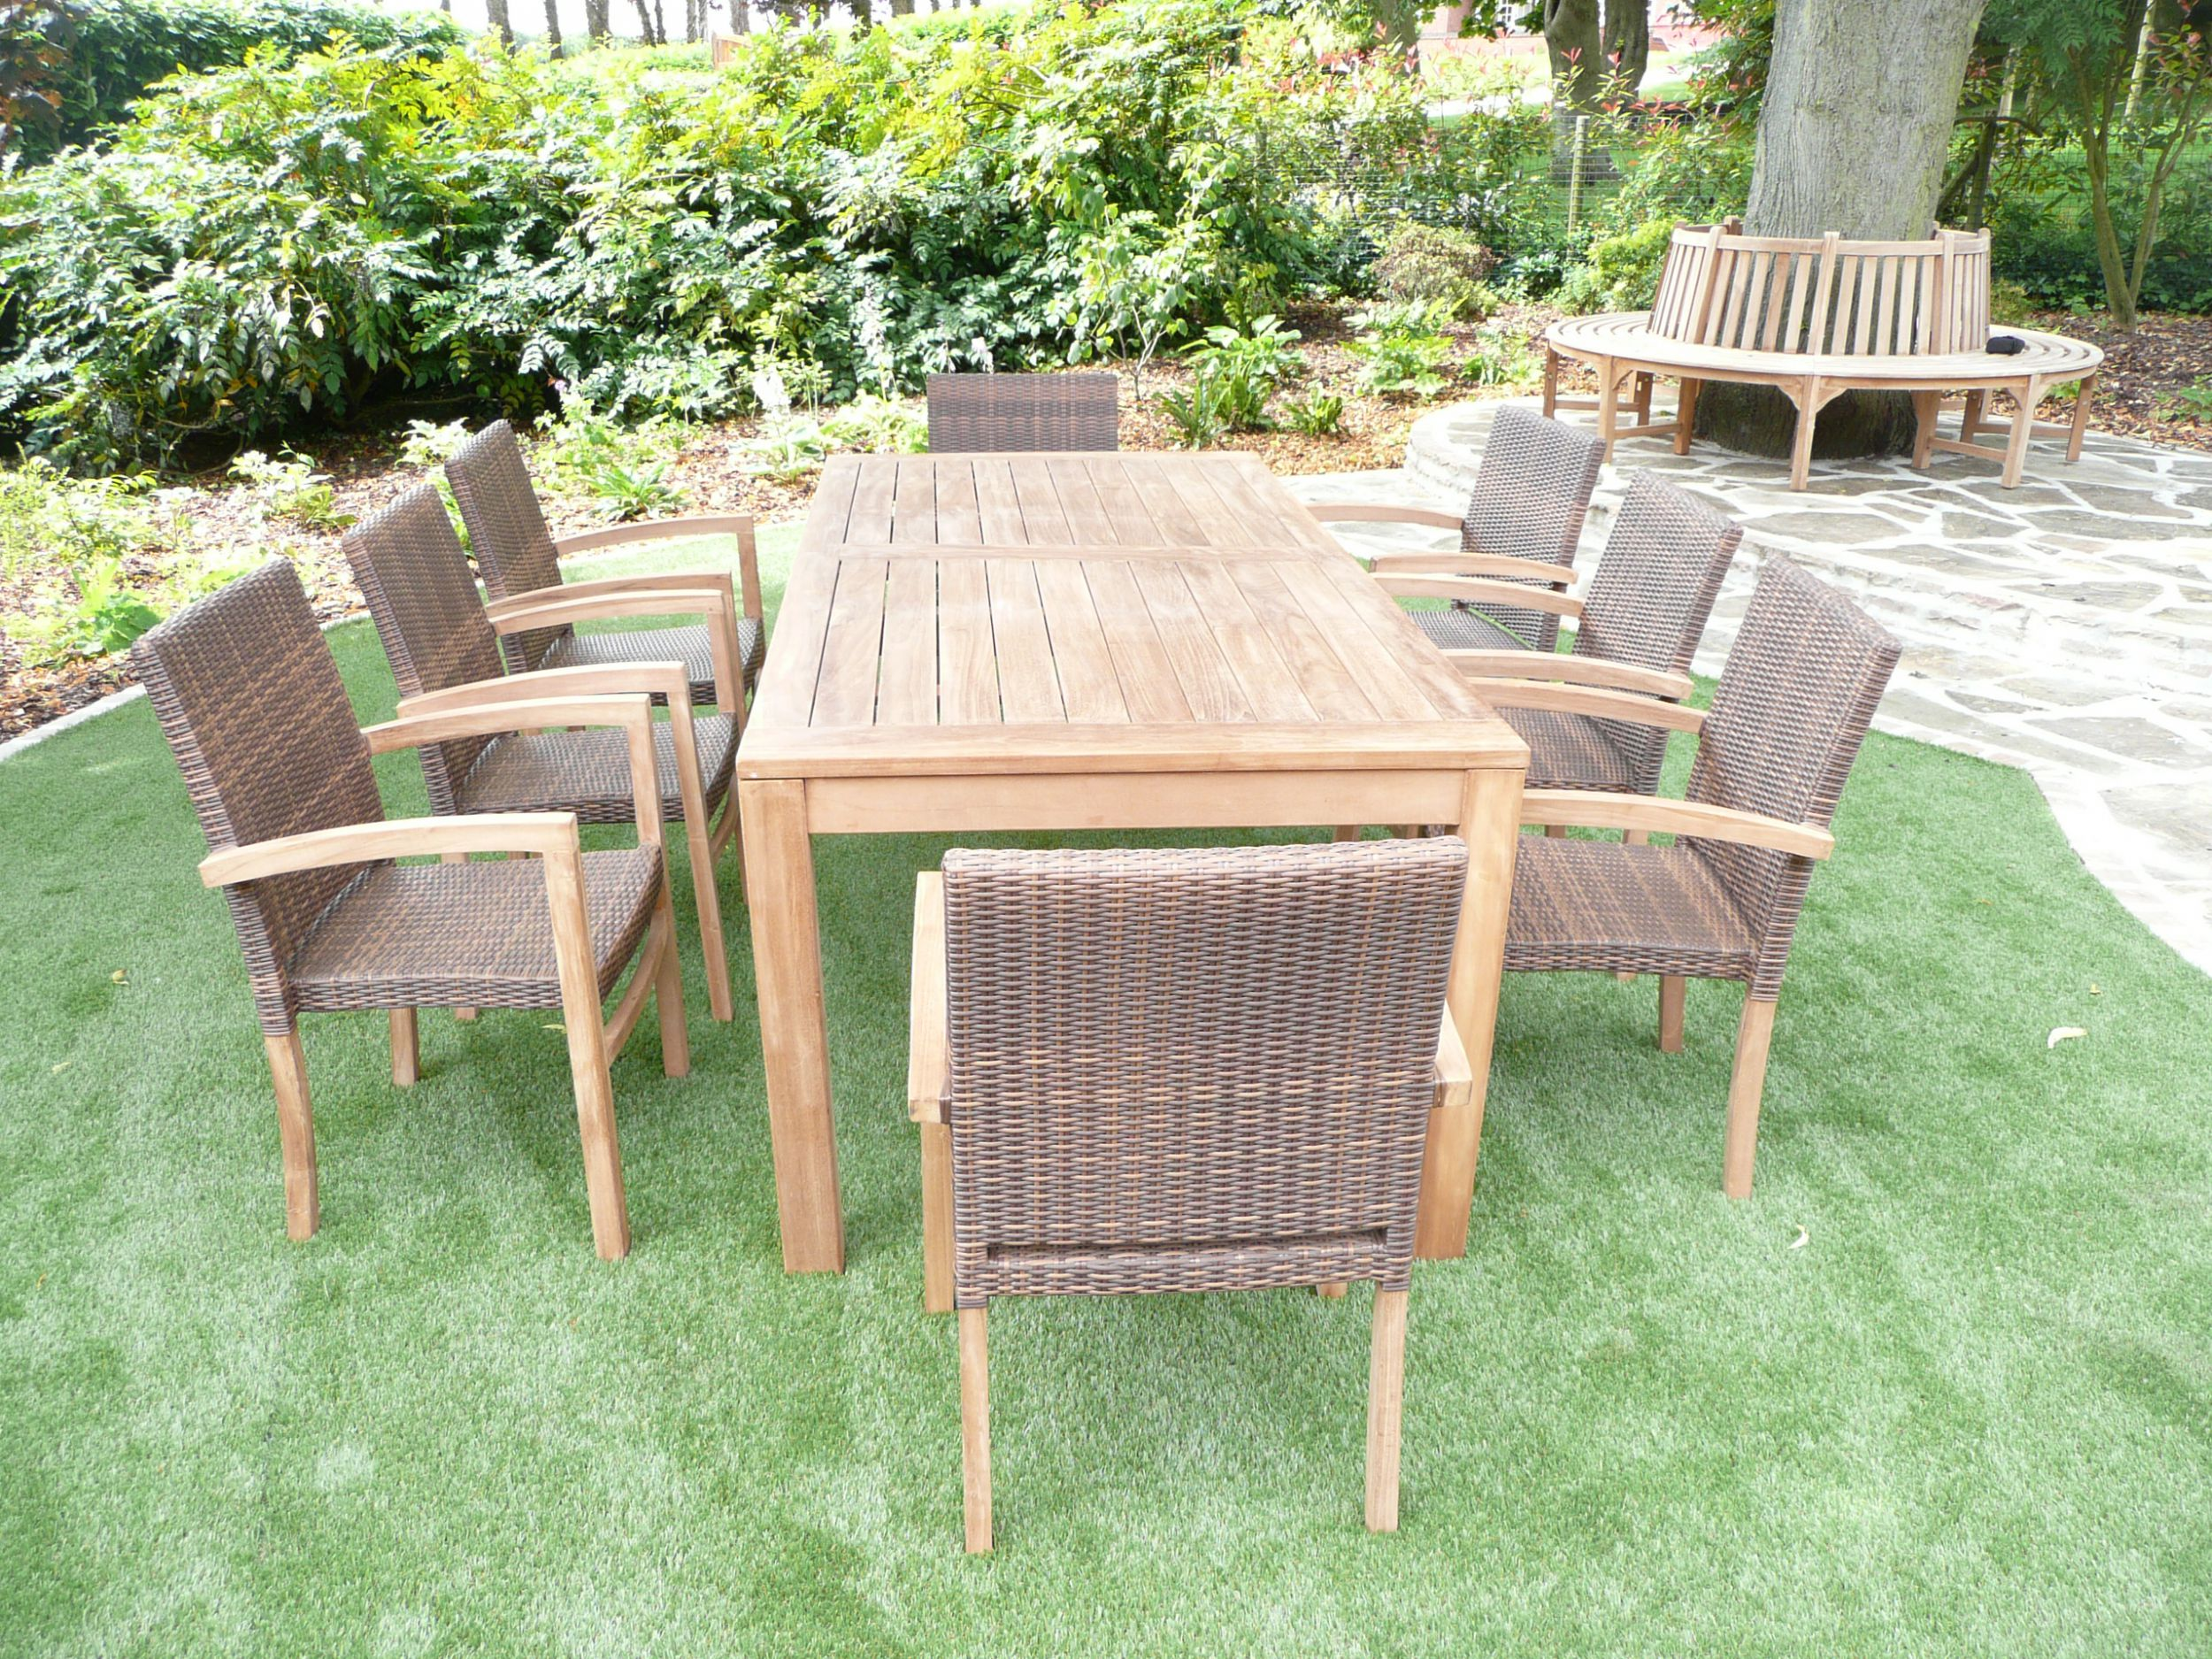 Cannes 8 seater teak rattan patio set humber imports - Garden furniture table and chairs ...